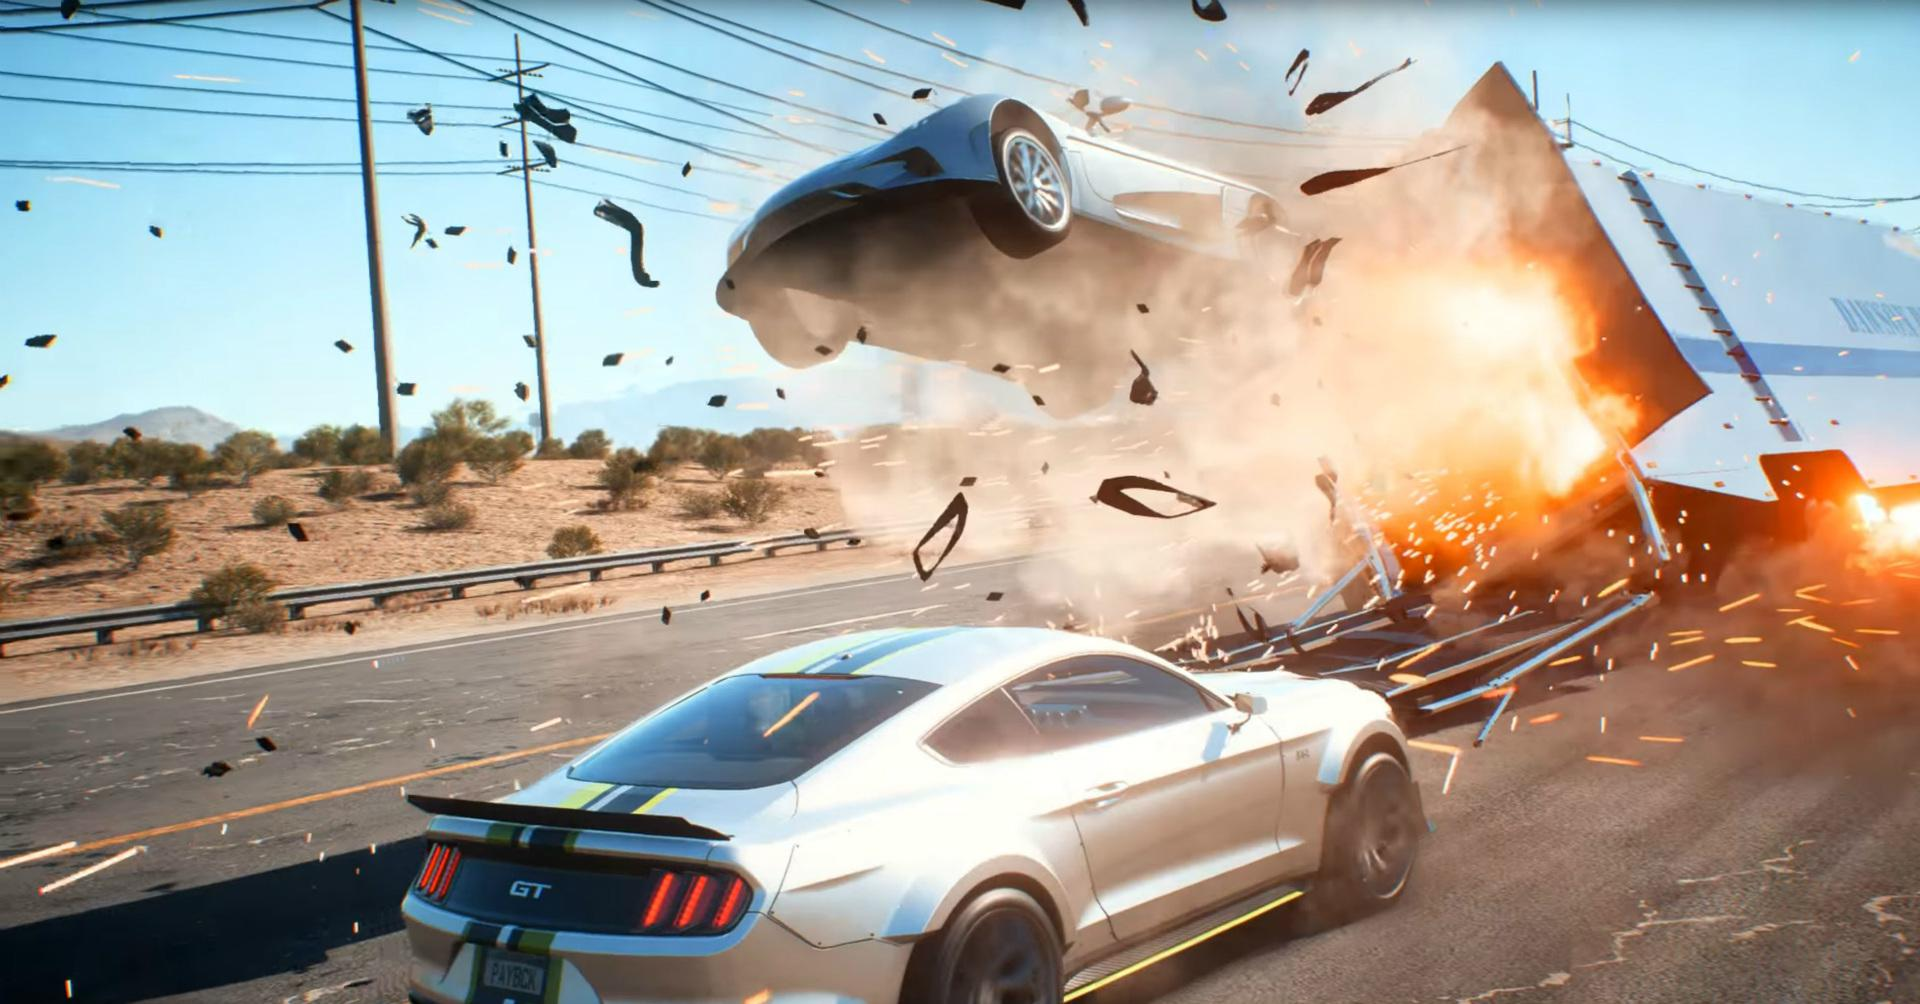 Need For Speed: Payback is powered by the Frostbite Engine - which delivers stunning visuals at 4K